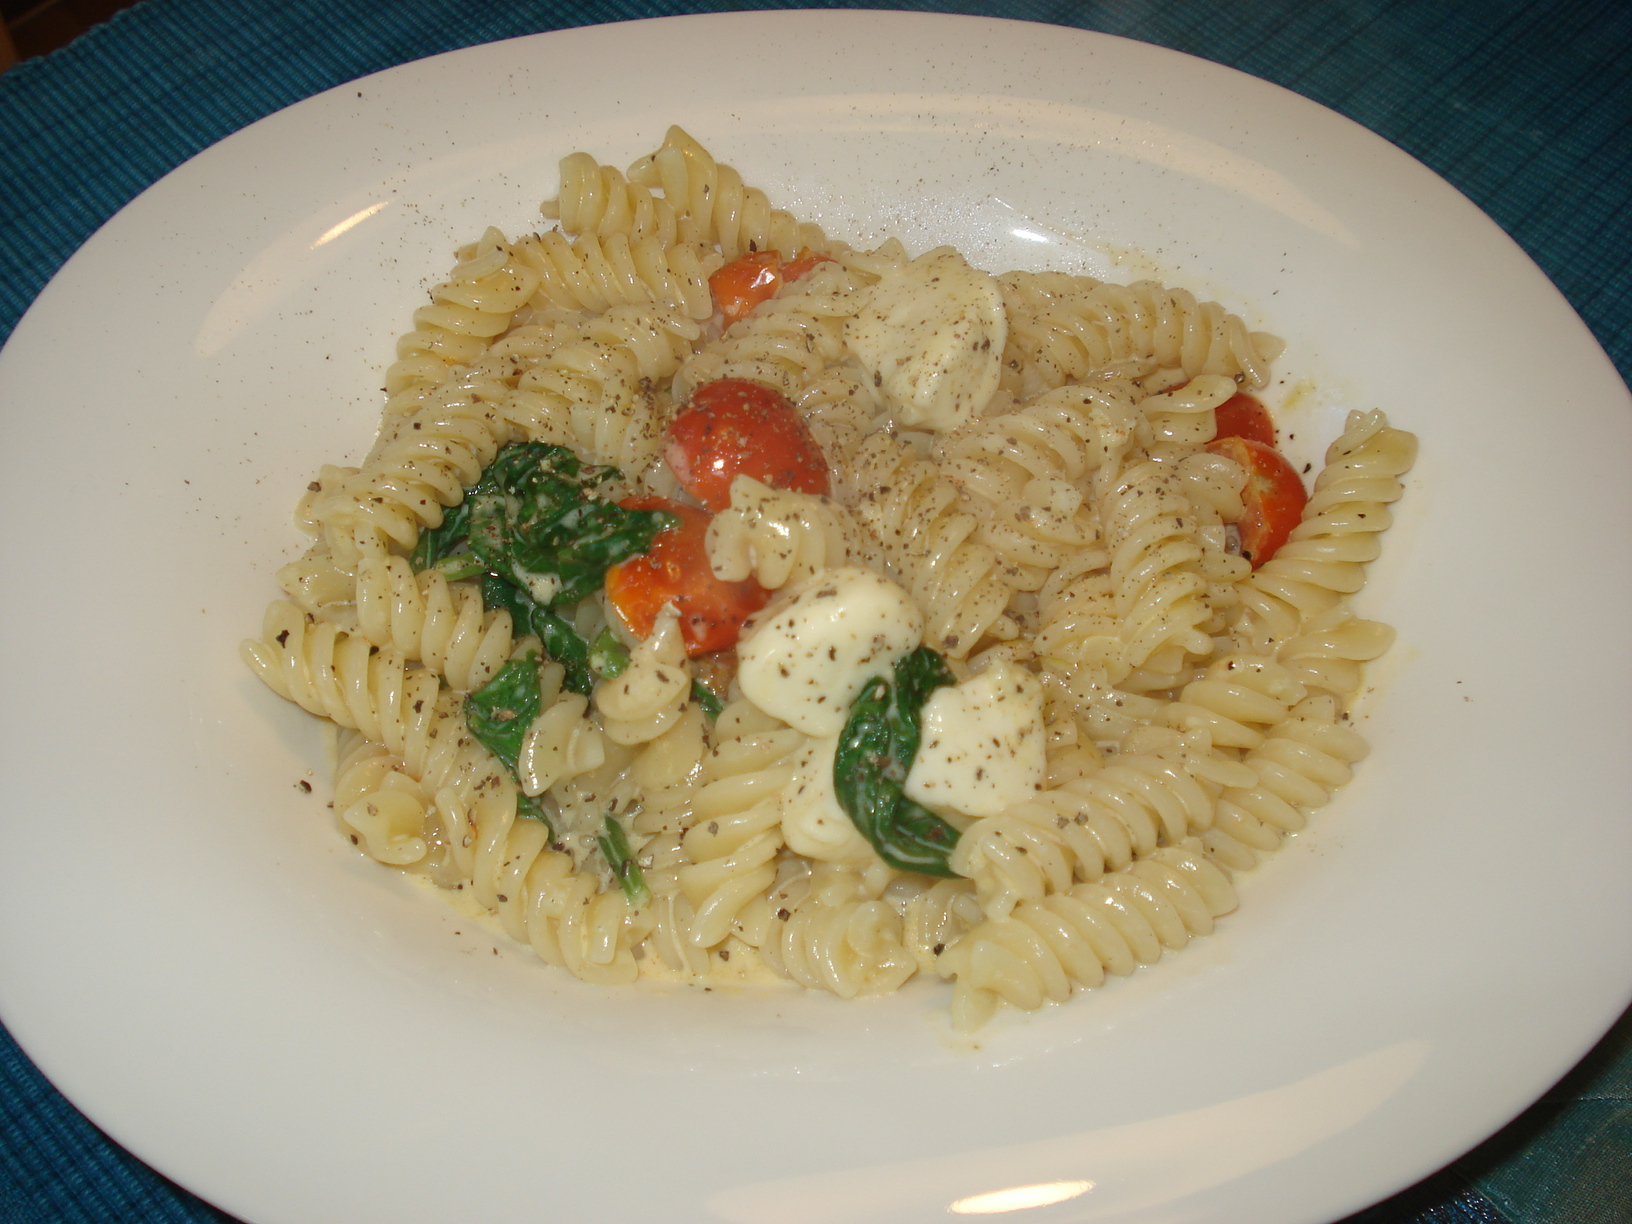 Pasta with cream, mozzarella, tomato and spinach